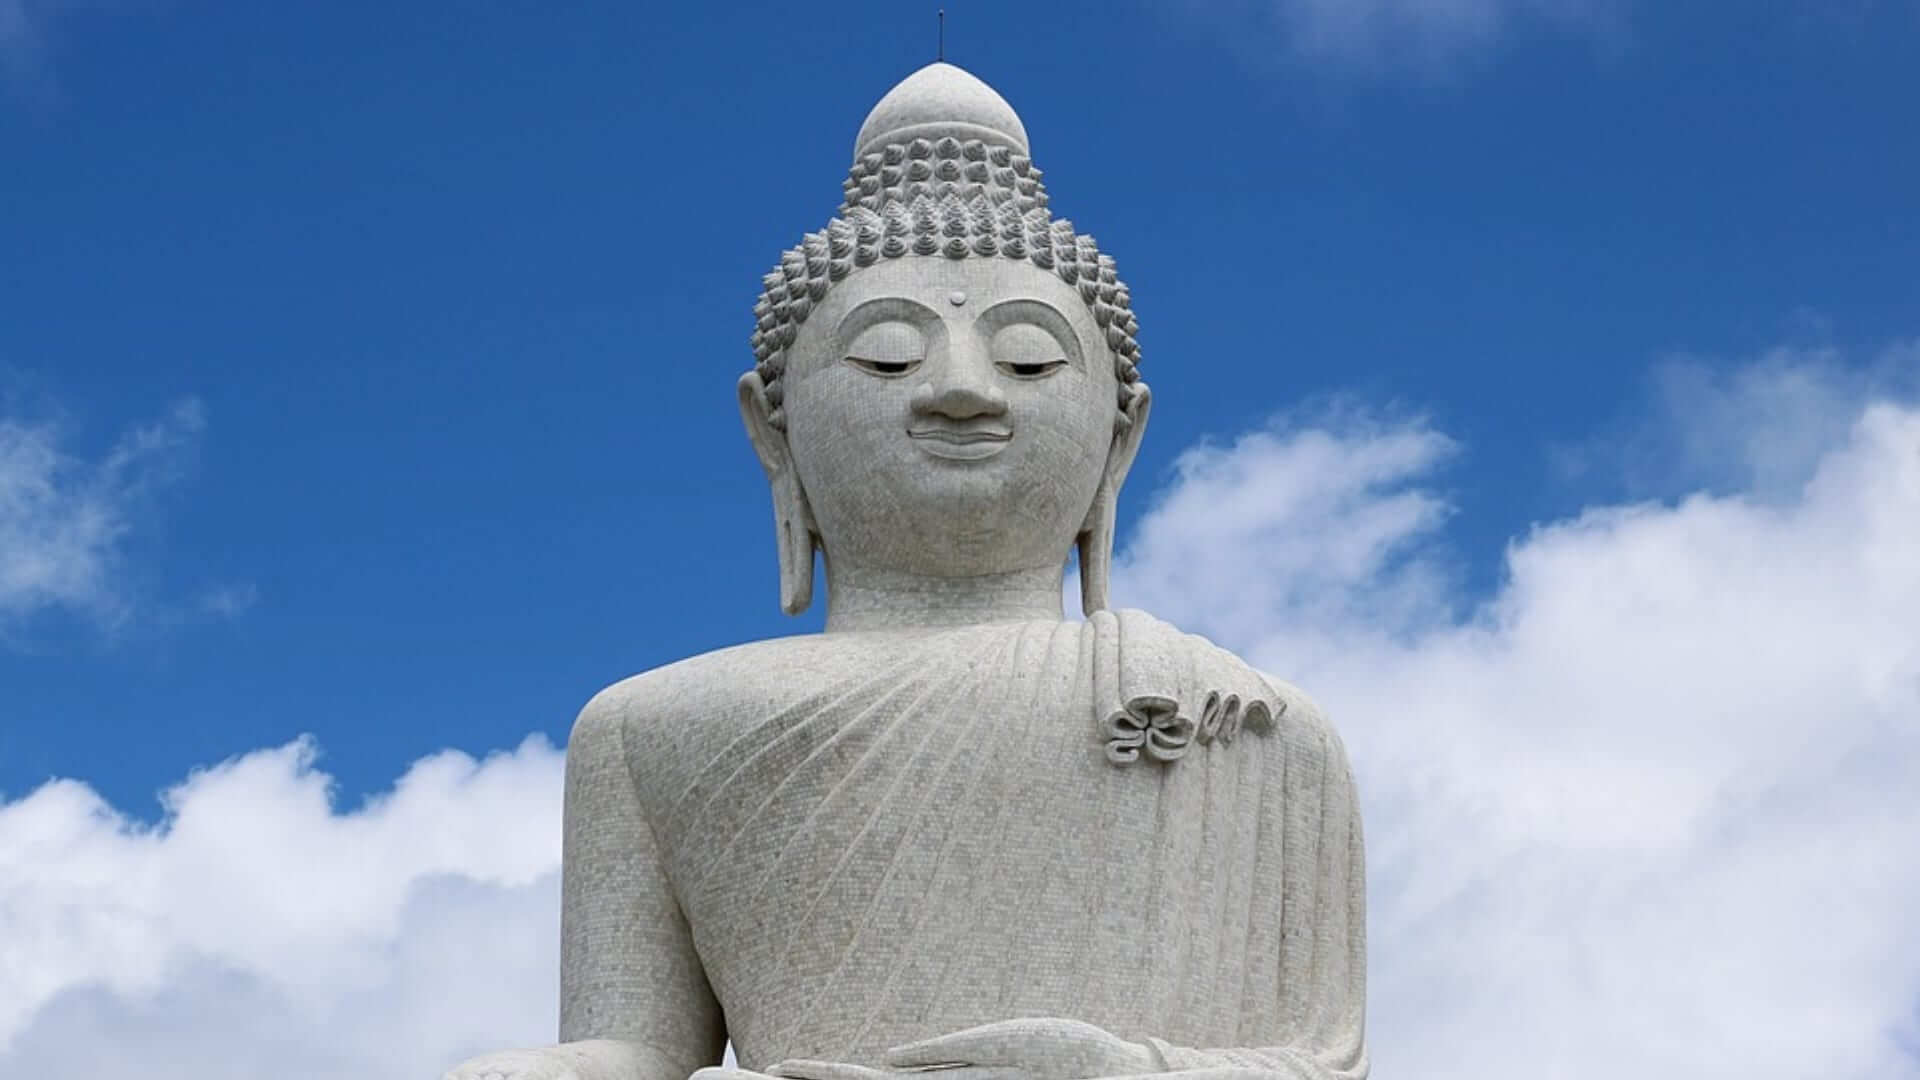 A big white buddha statue and a clear blue sky in Thailand.